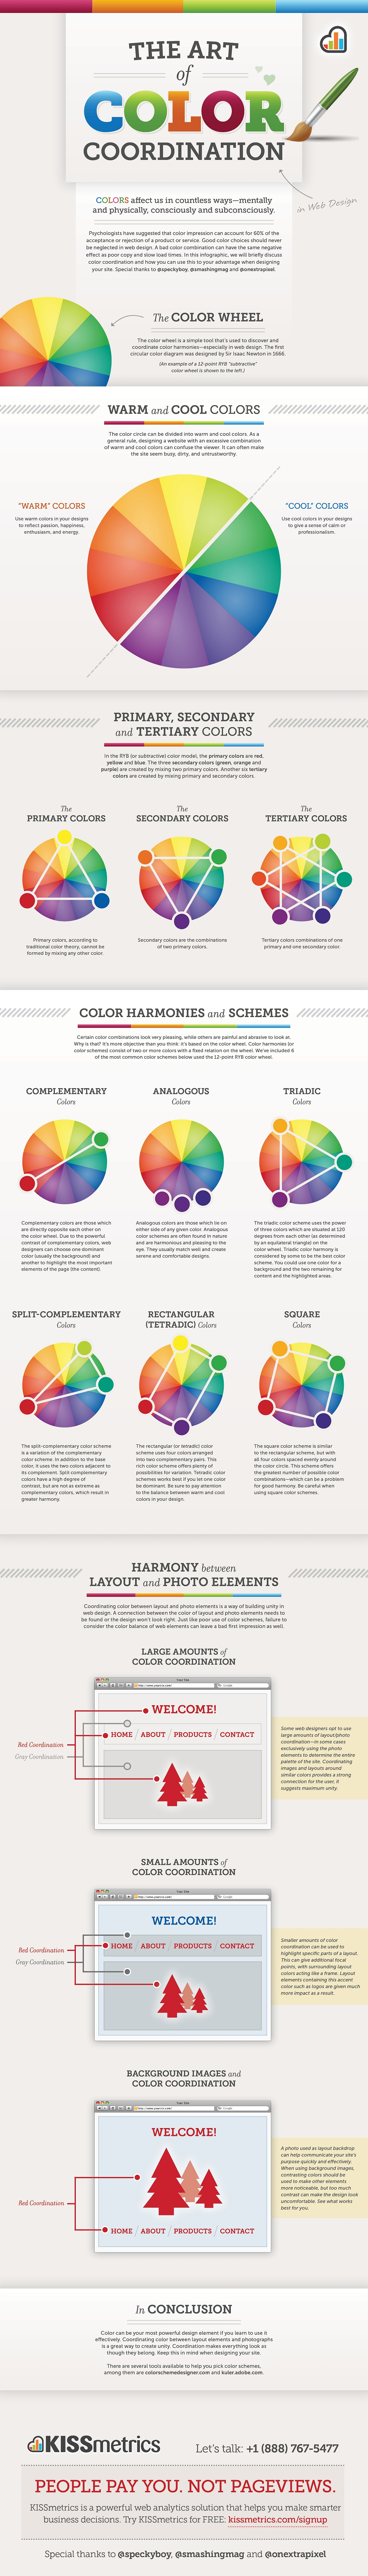 The Art of Color Coordination infographic